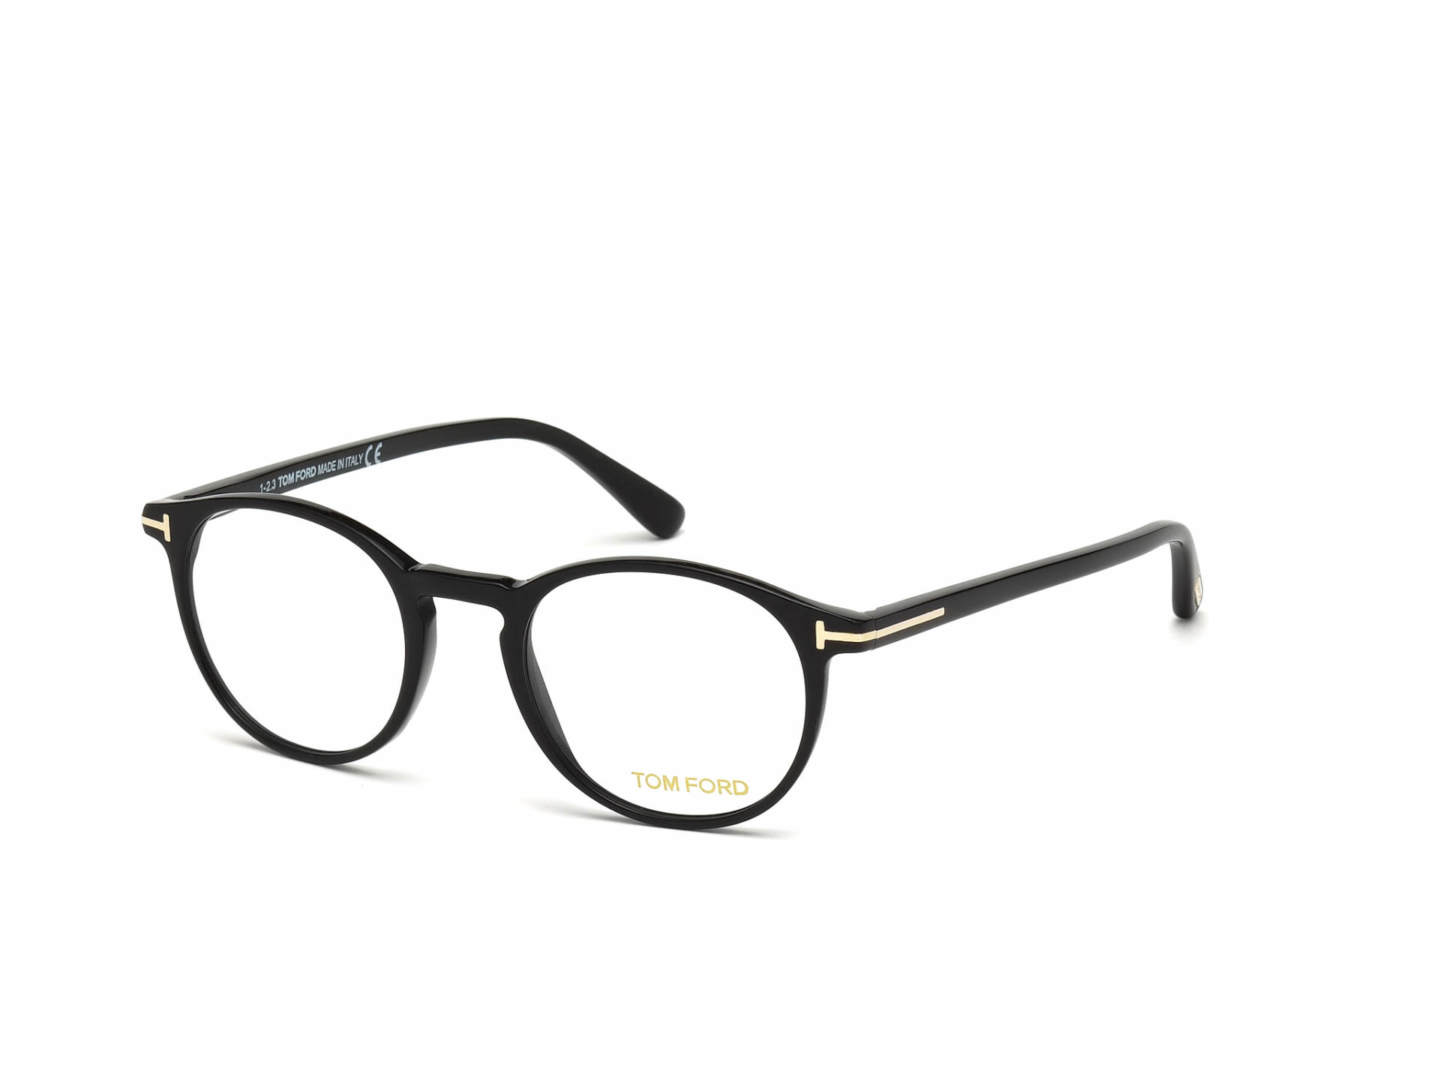 Occhiali da vista per uomo Tom Ford FT5294 001 - calibro 48